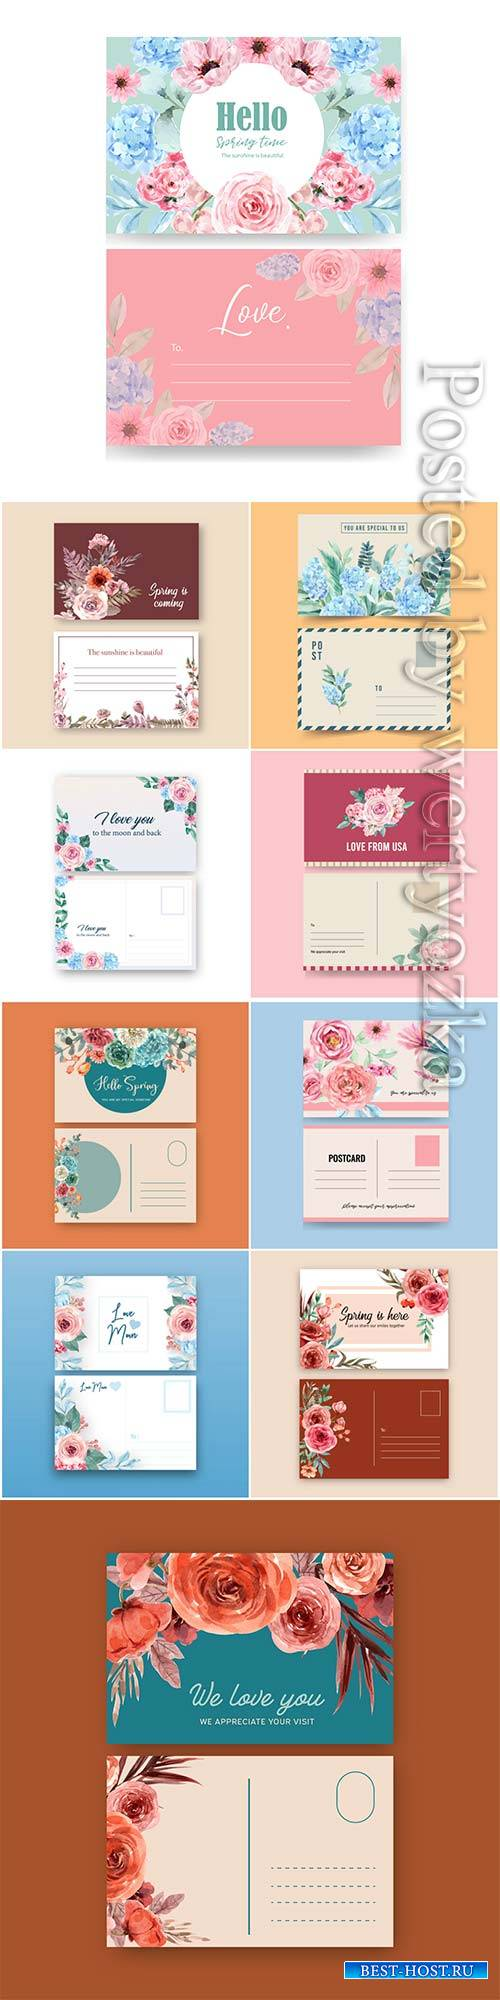 Floral charming postcard with flowers watercolor illustration